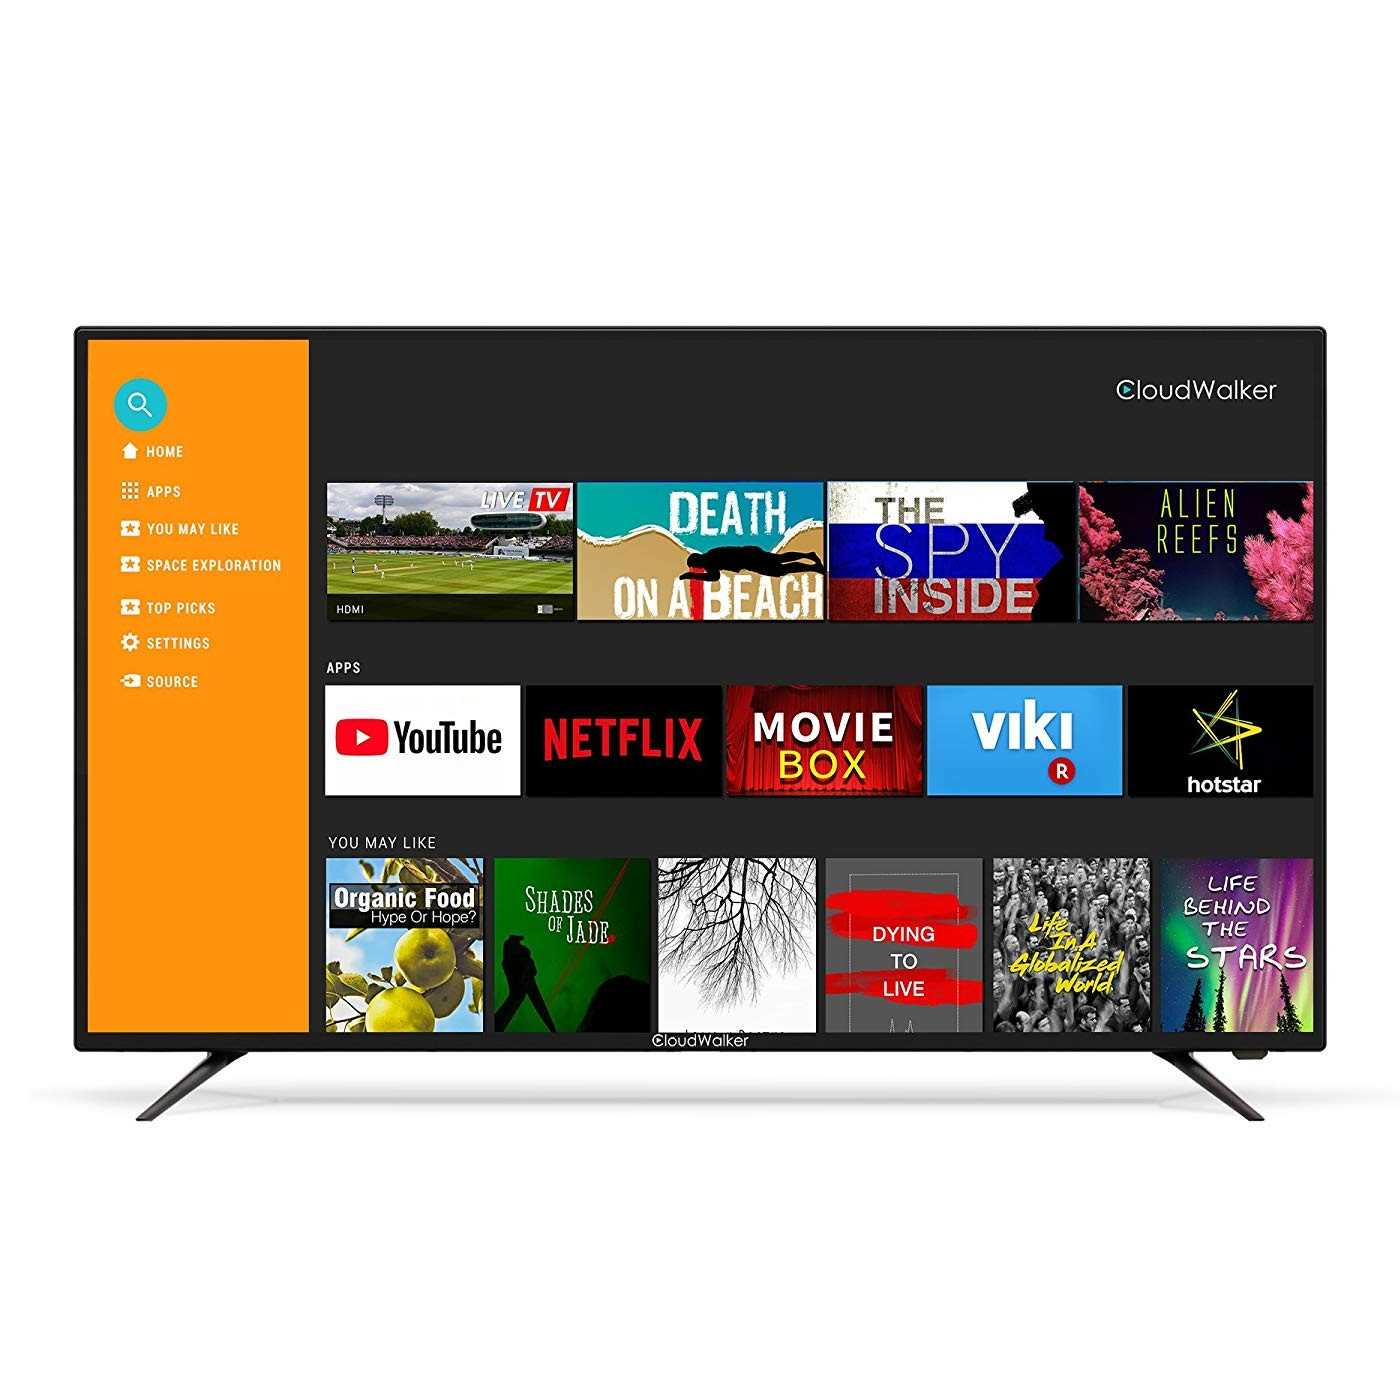 CloudWalker Cloud TV 50SFX2 50 Inch Full HD Smart LED Television